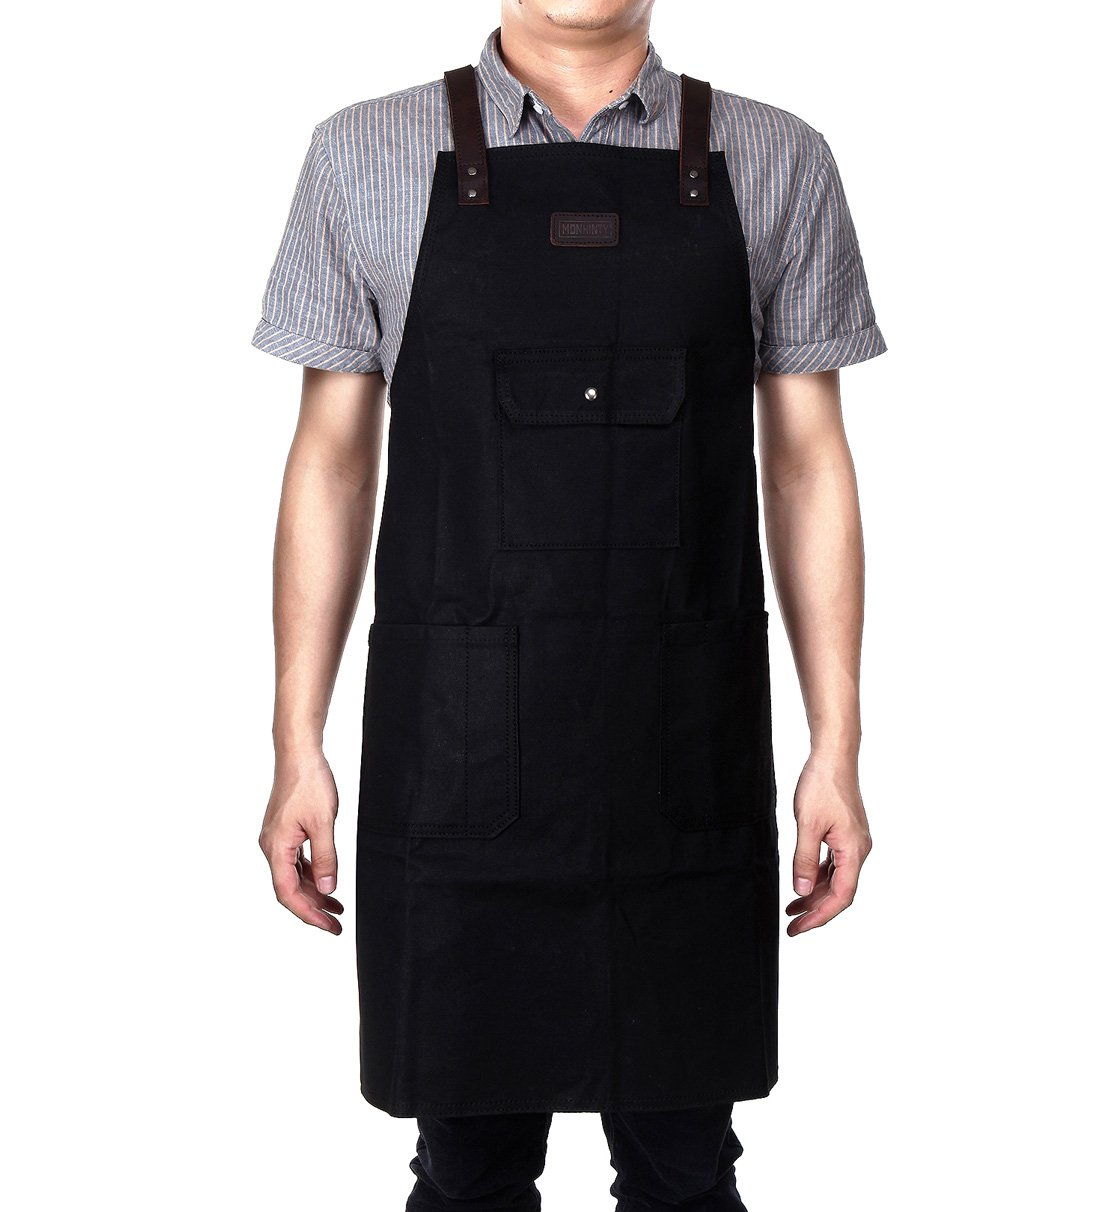 Black Waxed Canvas Work Apron Waterproof With Tool Pockets For Men & Women Utility Heavy Duty Shop Aprons With Long Cross-back Straps Adjustable Size Up To XXL